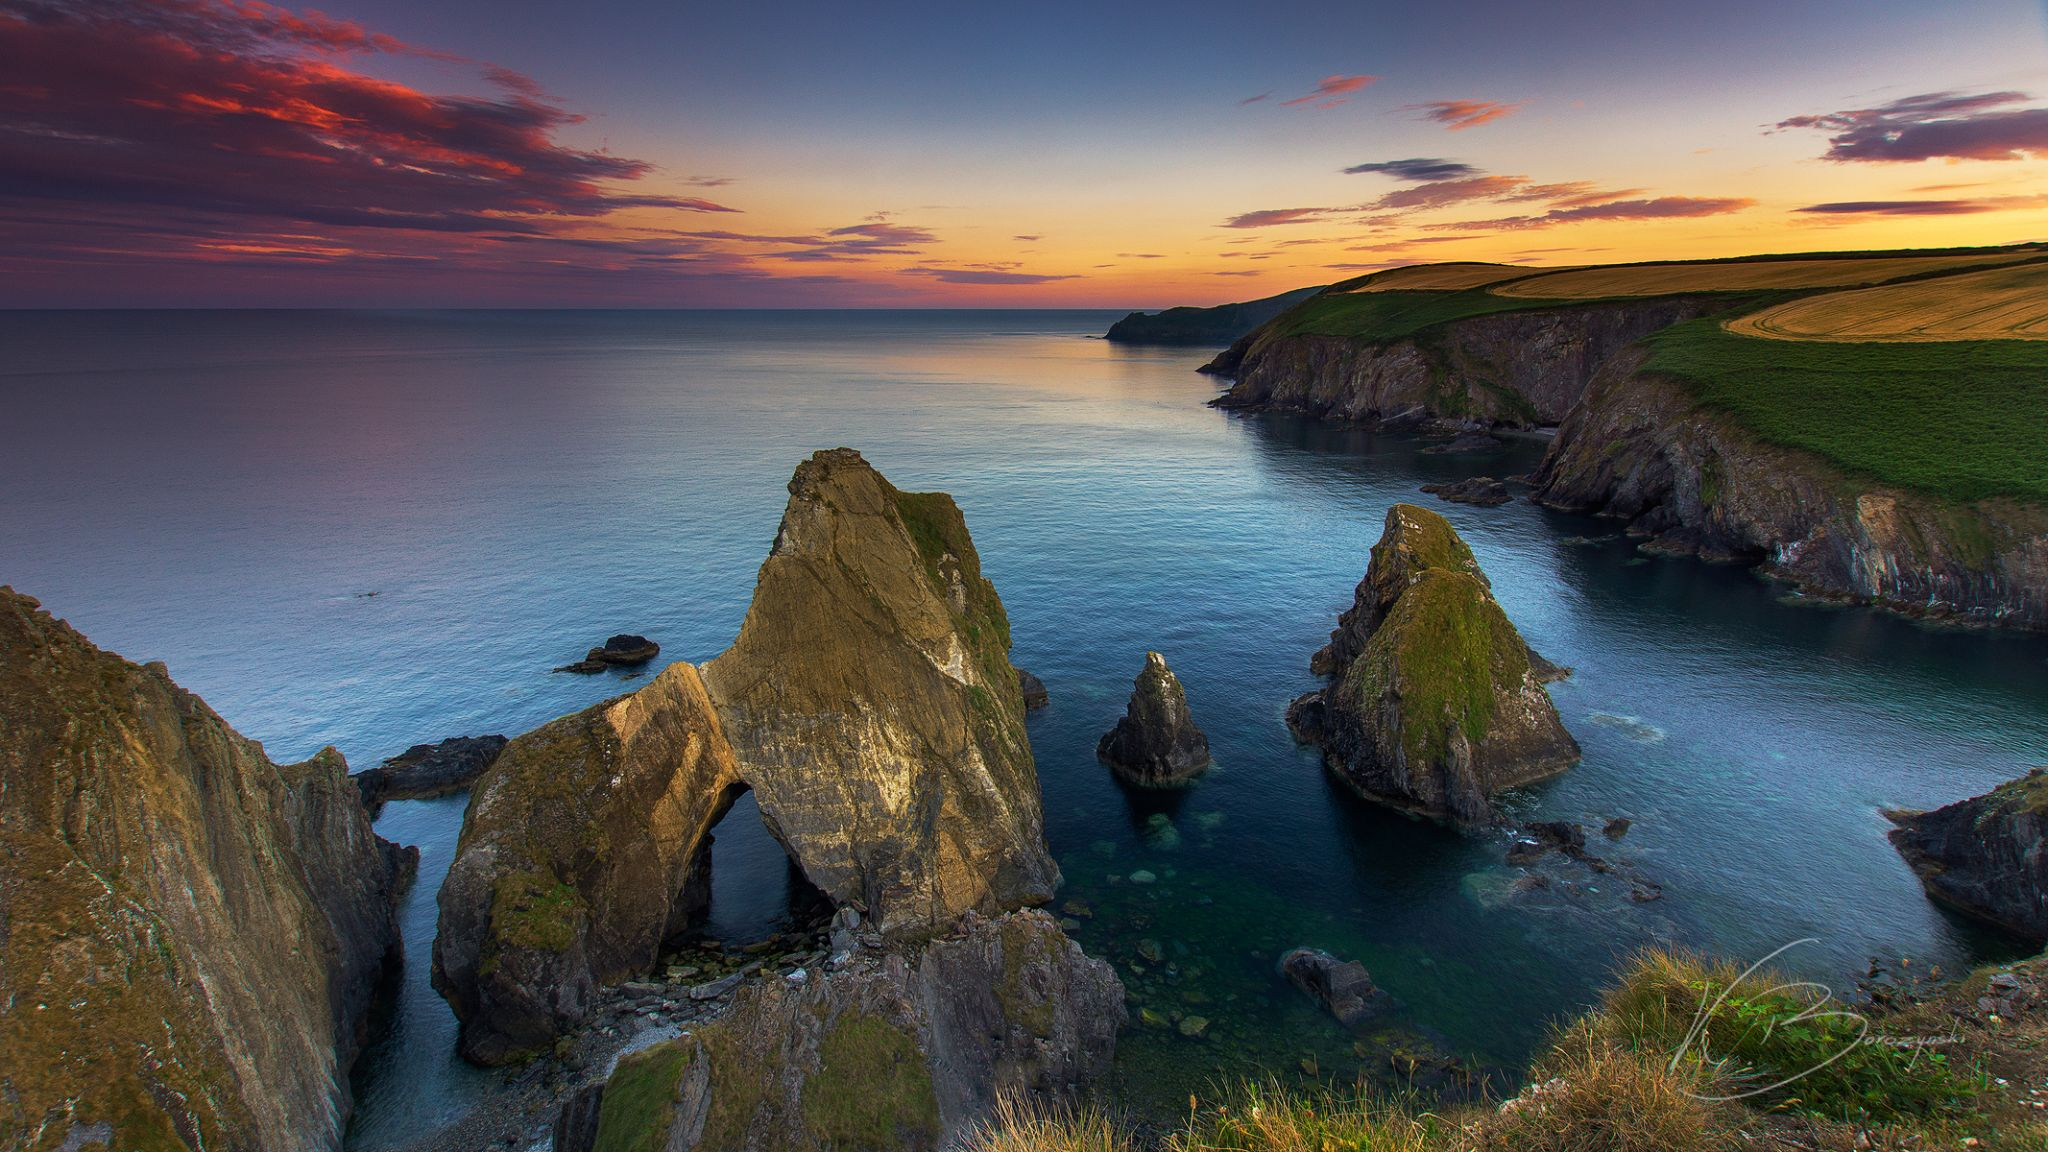 Nohoval Cove, Ireland